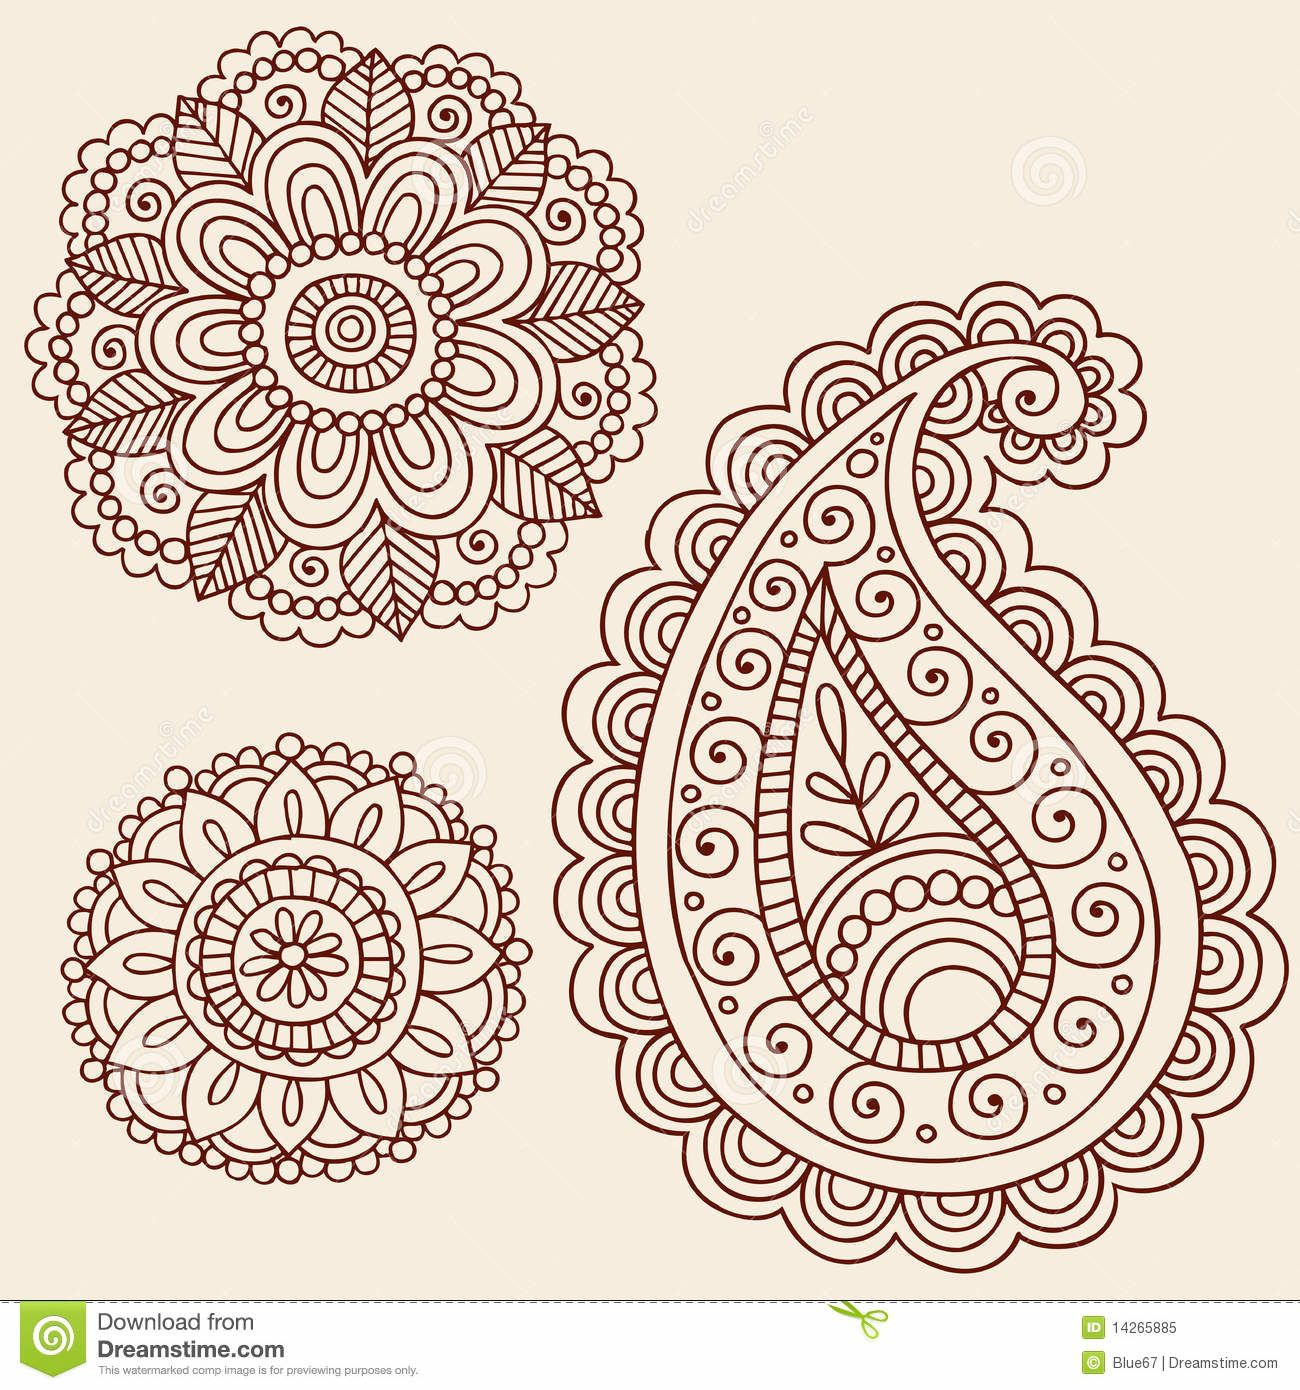 lotus and paisley crafty and cool pinterest. Black Bedroom Furniture Sets. Home Design Ideas